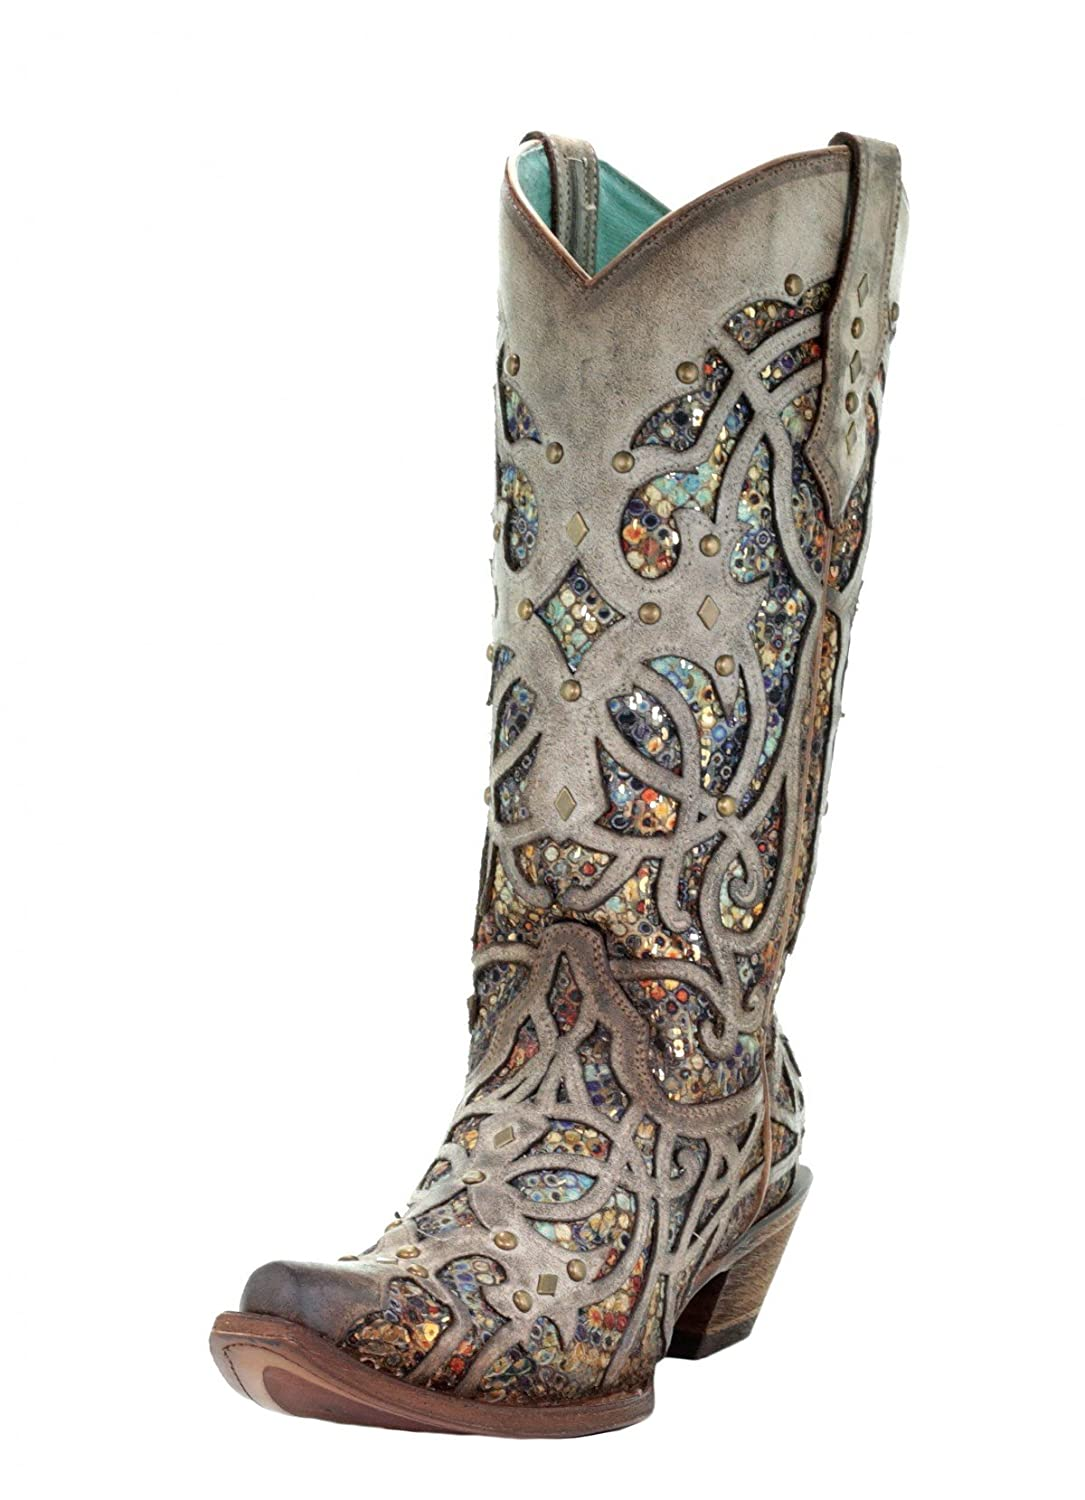 CORRAL C3409 Taupe Multicolor Inlay and Studs Boots B07FDH115C 9.5 M US